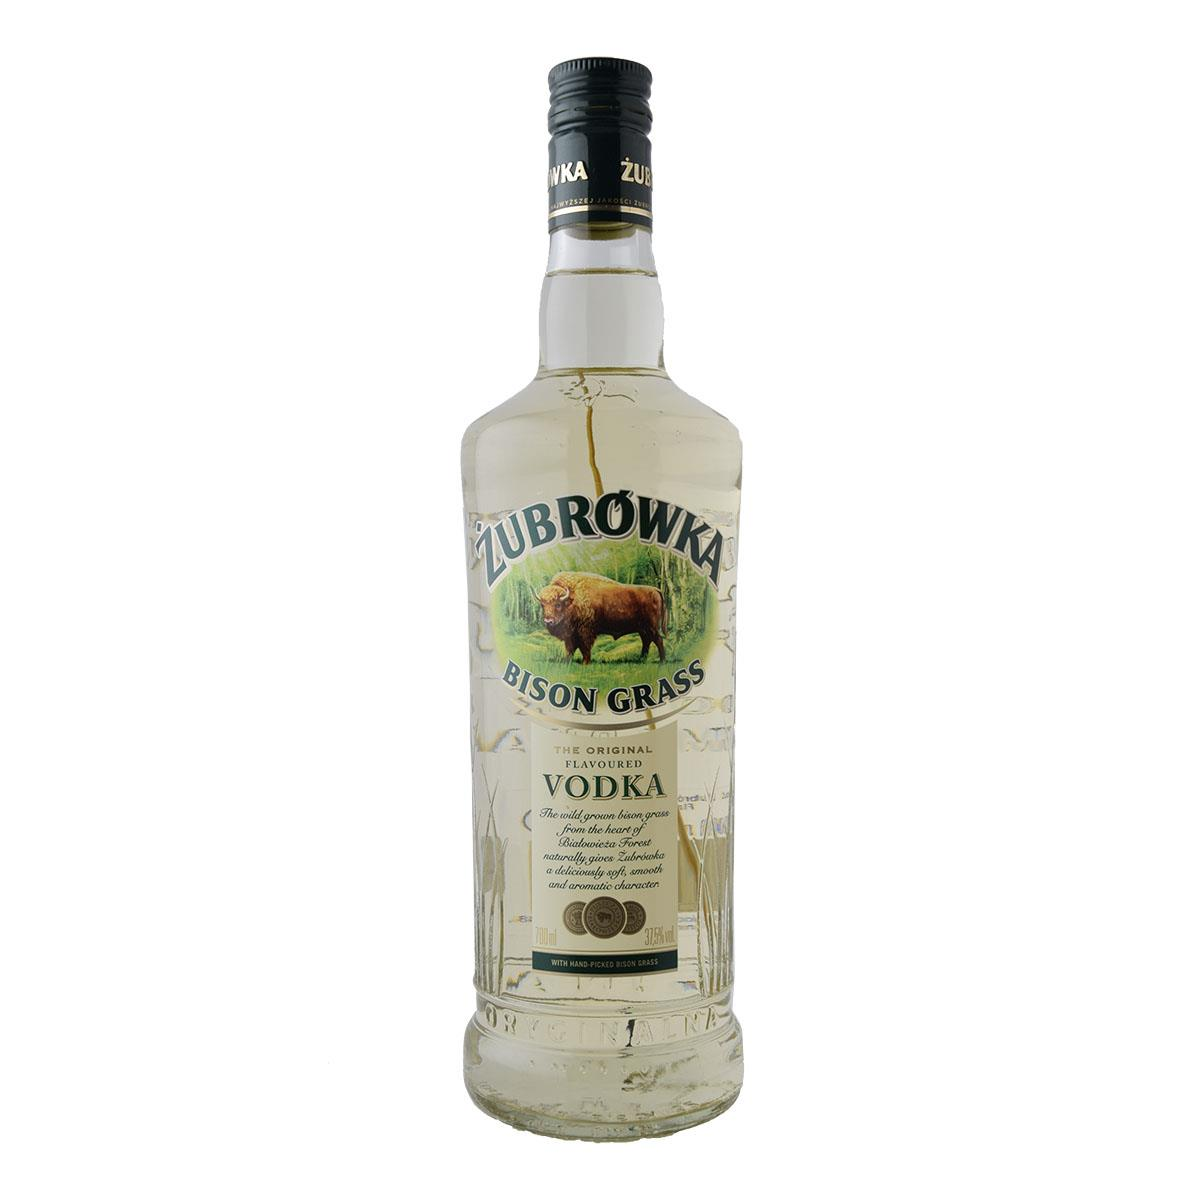 Zubrowka Bison Grass Βότκα 700ml